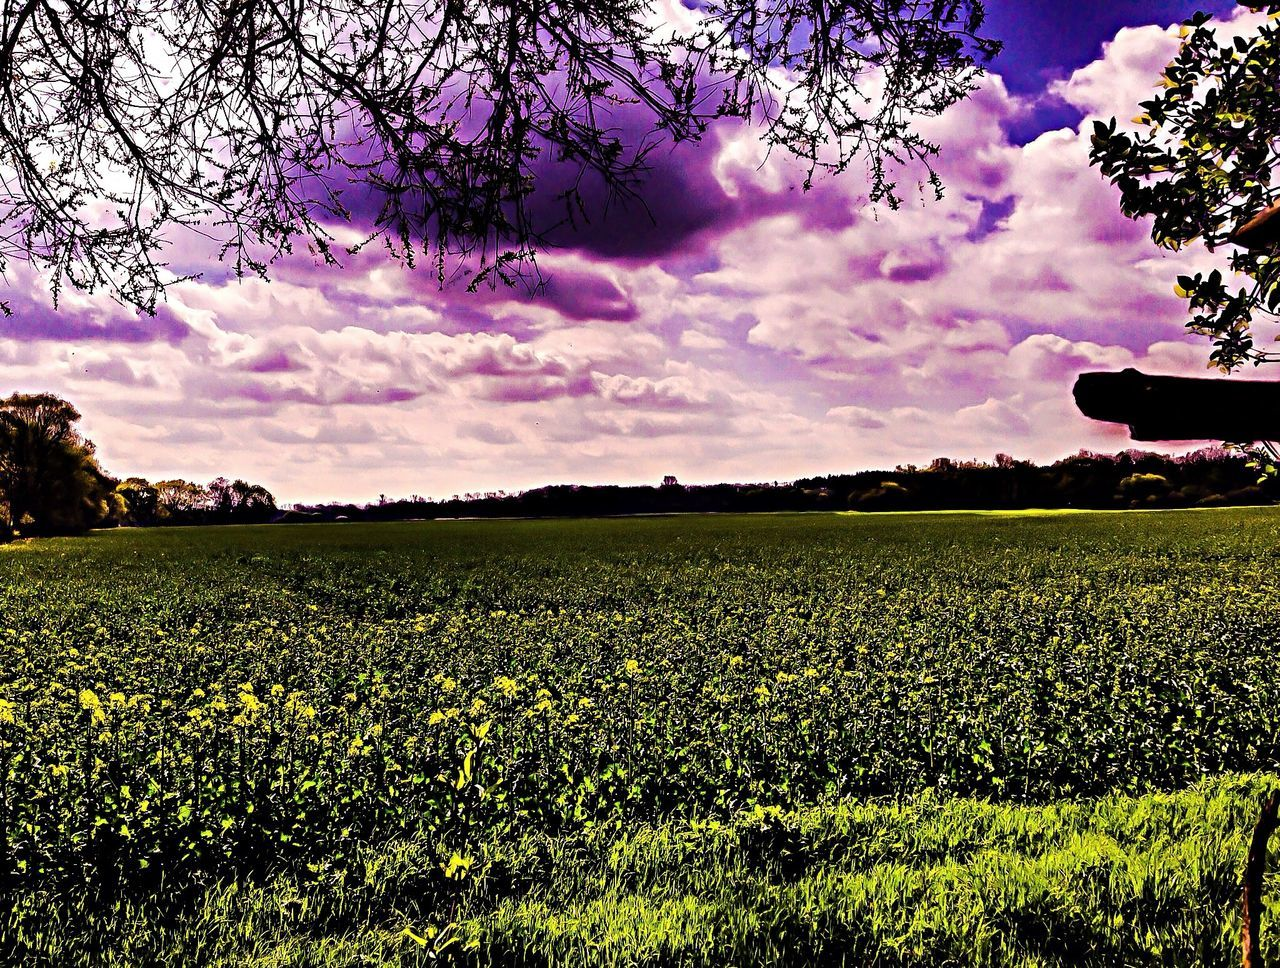 beauty in nature, flower, nature, field, growth, agriculture, tree, sky, tranquility, cloud - sky, tranquil scene, blossom, scenics, no people, rural scene, outdoors, fragility, springtime, plant, blooming, landscape, freshness, day, flower head